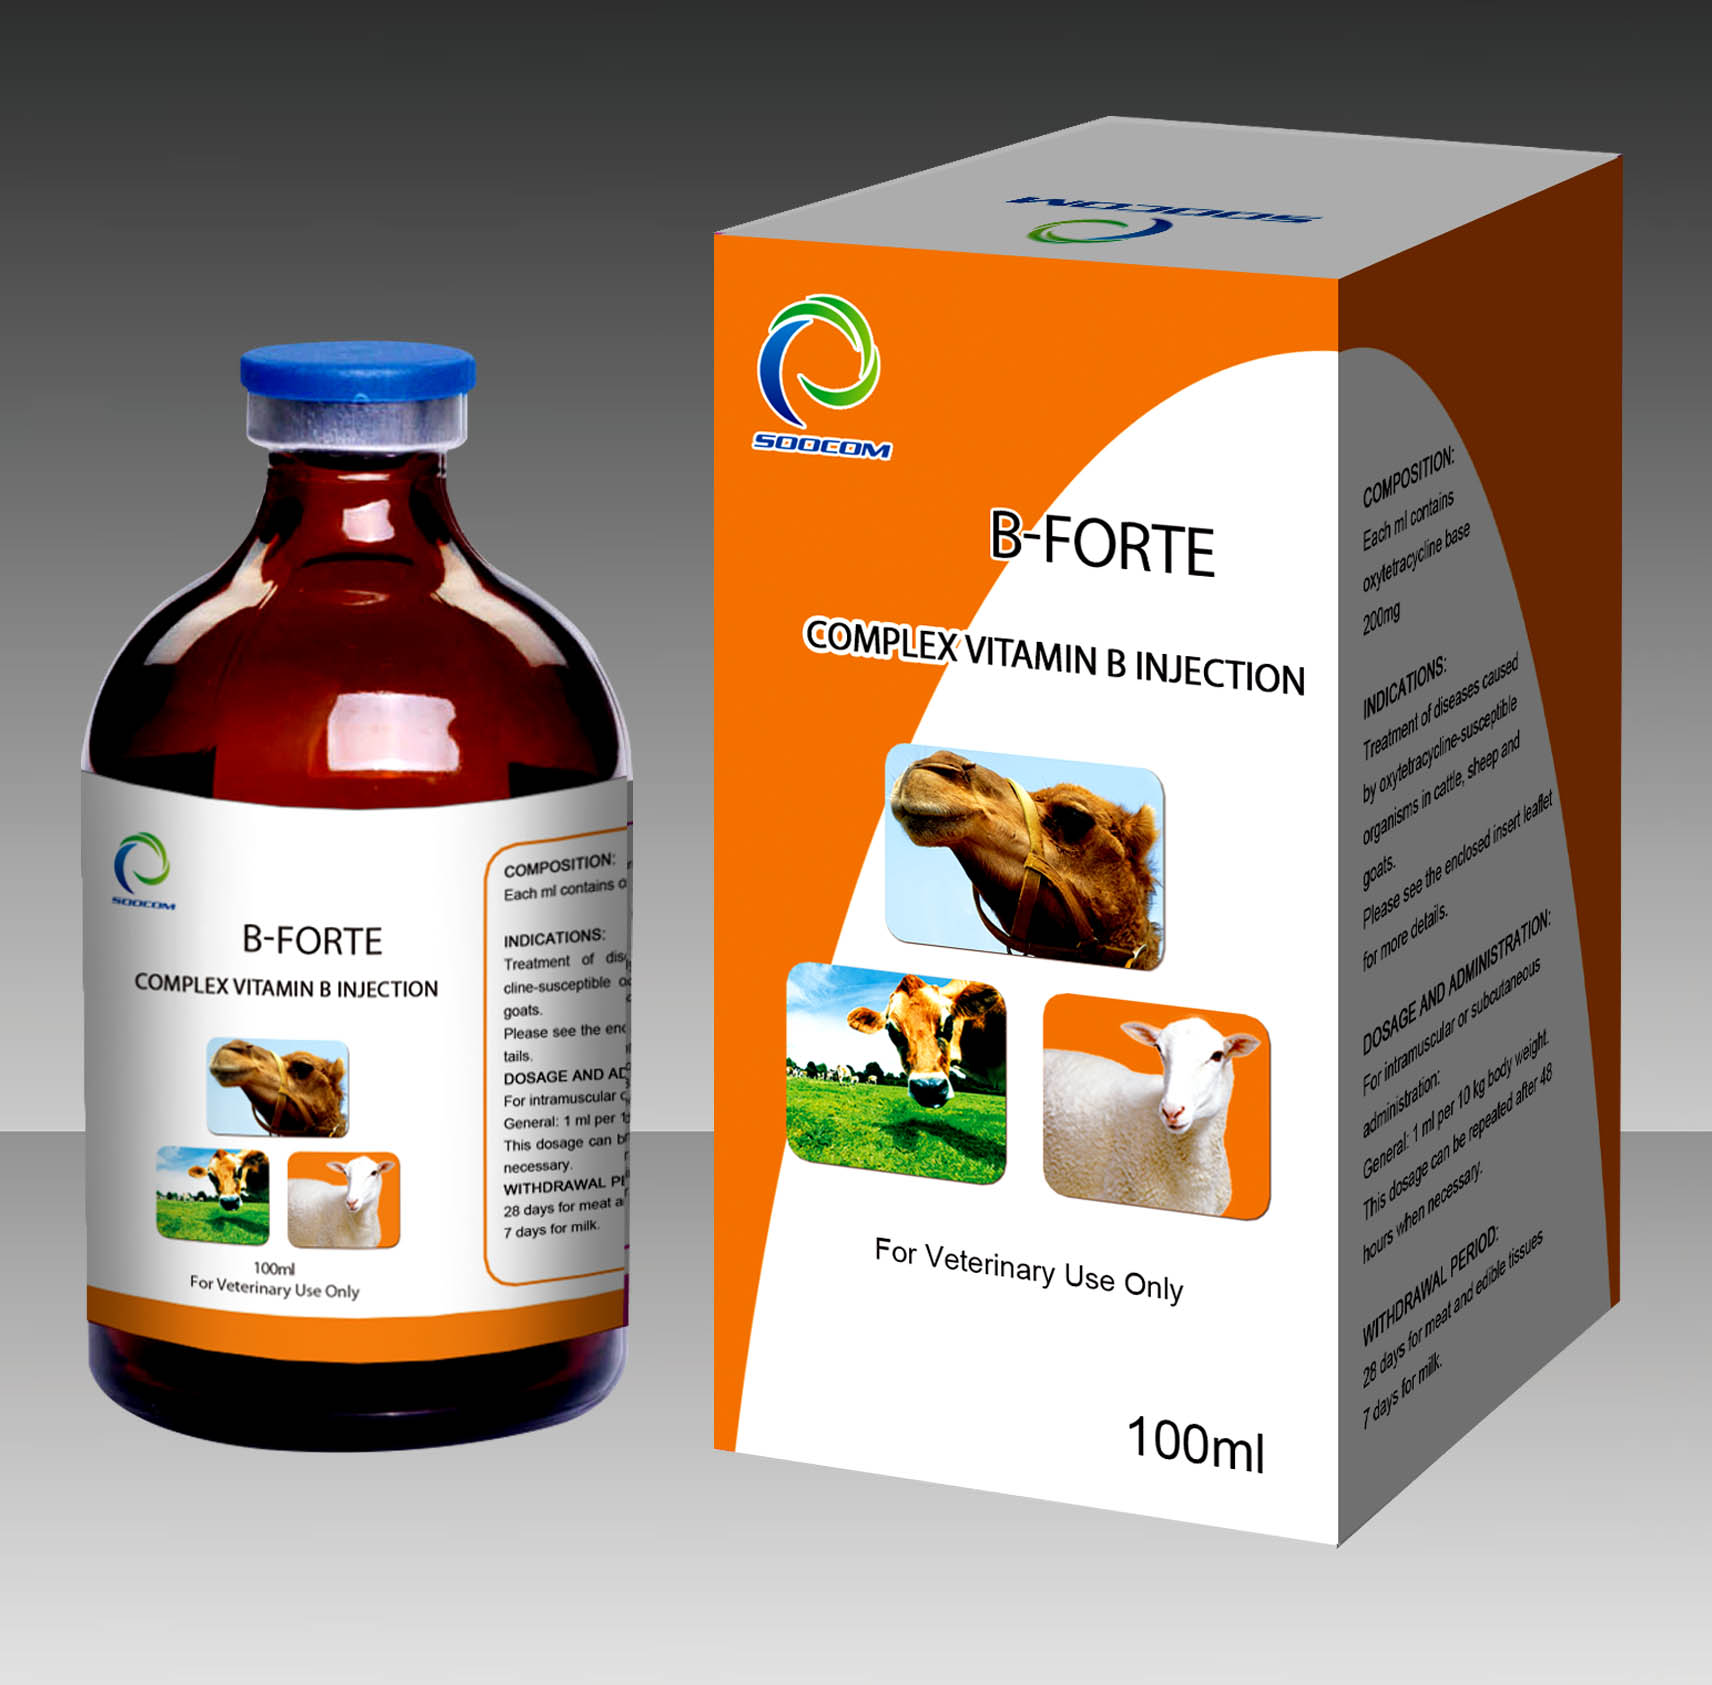 B-FORTE COMPLEX VITAMIN B INJECTION